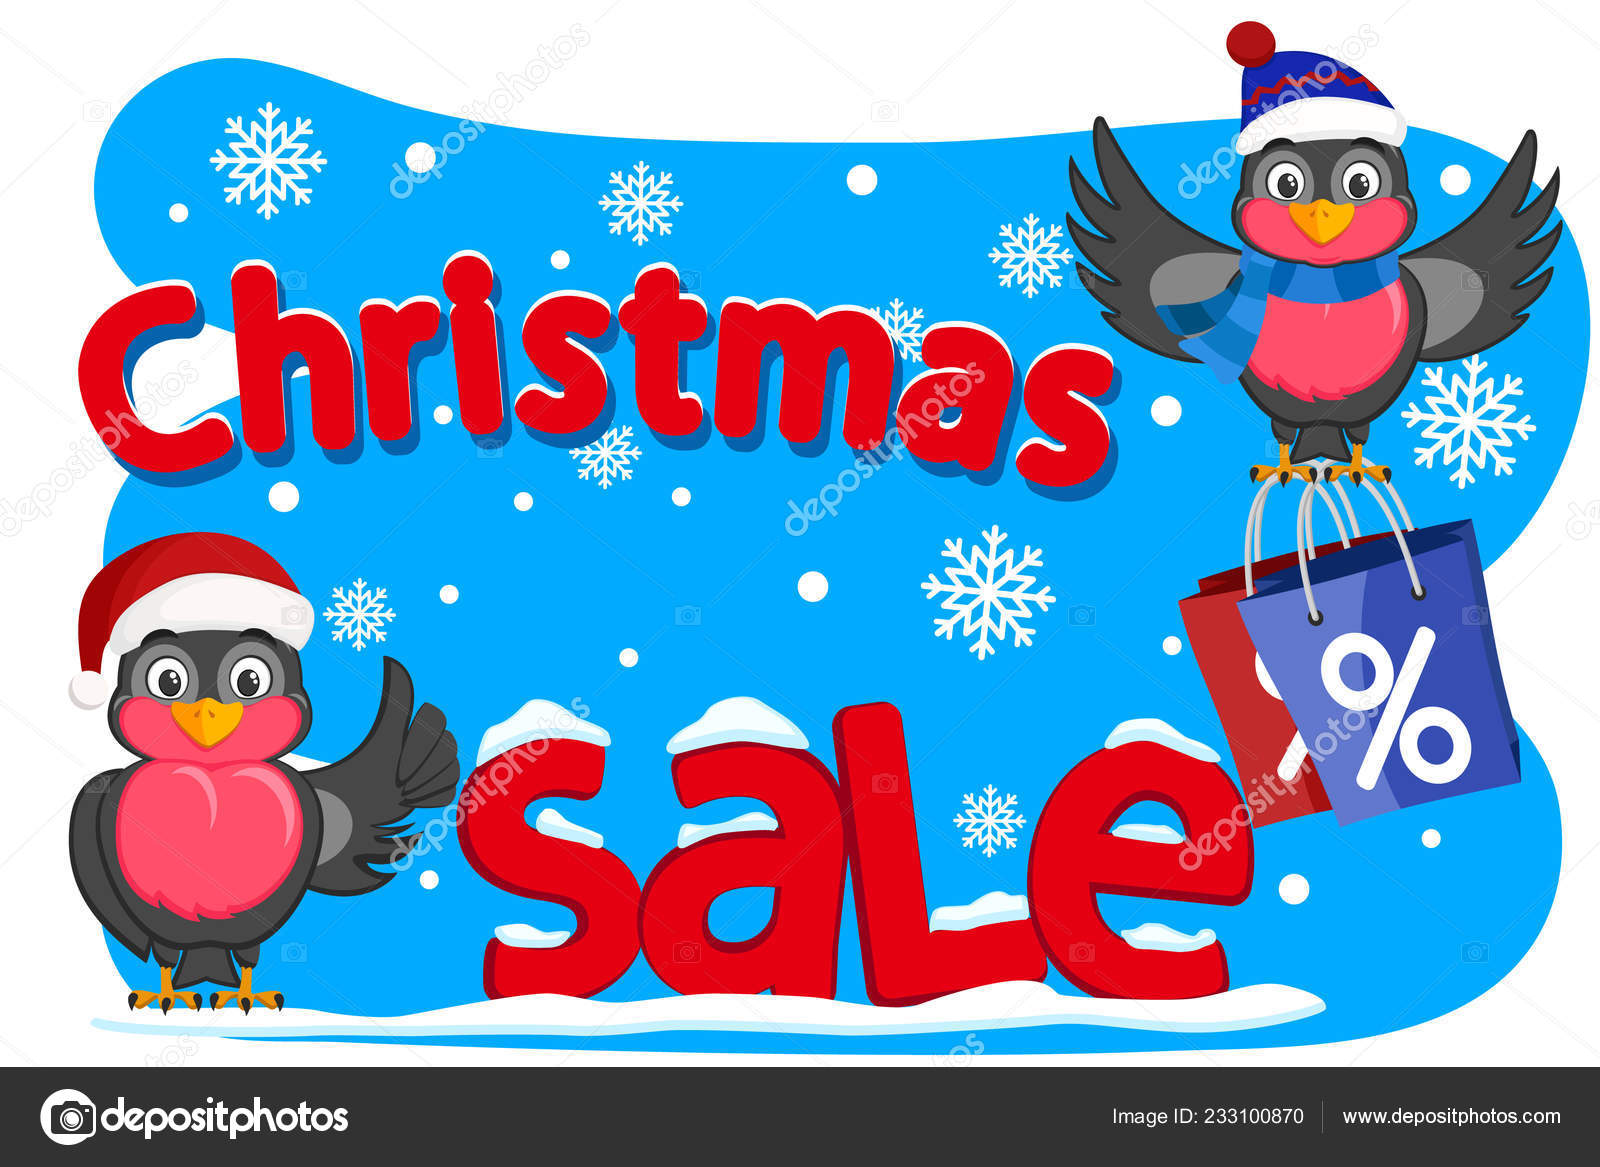 Two Birds Bullfinches Shows Like And Holding Shopping Bags Christmas Sales Stock Vector C Innakreativ Yandex Ru 233100870